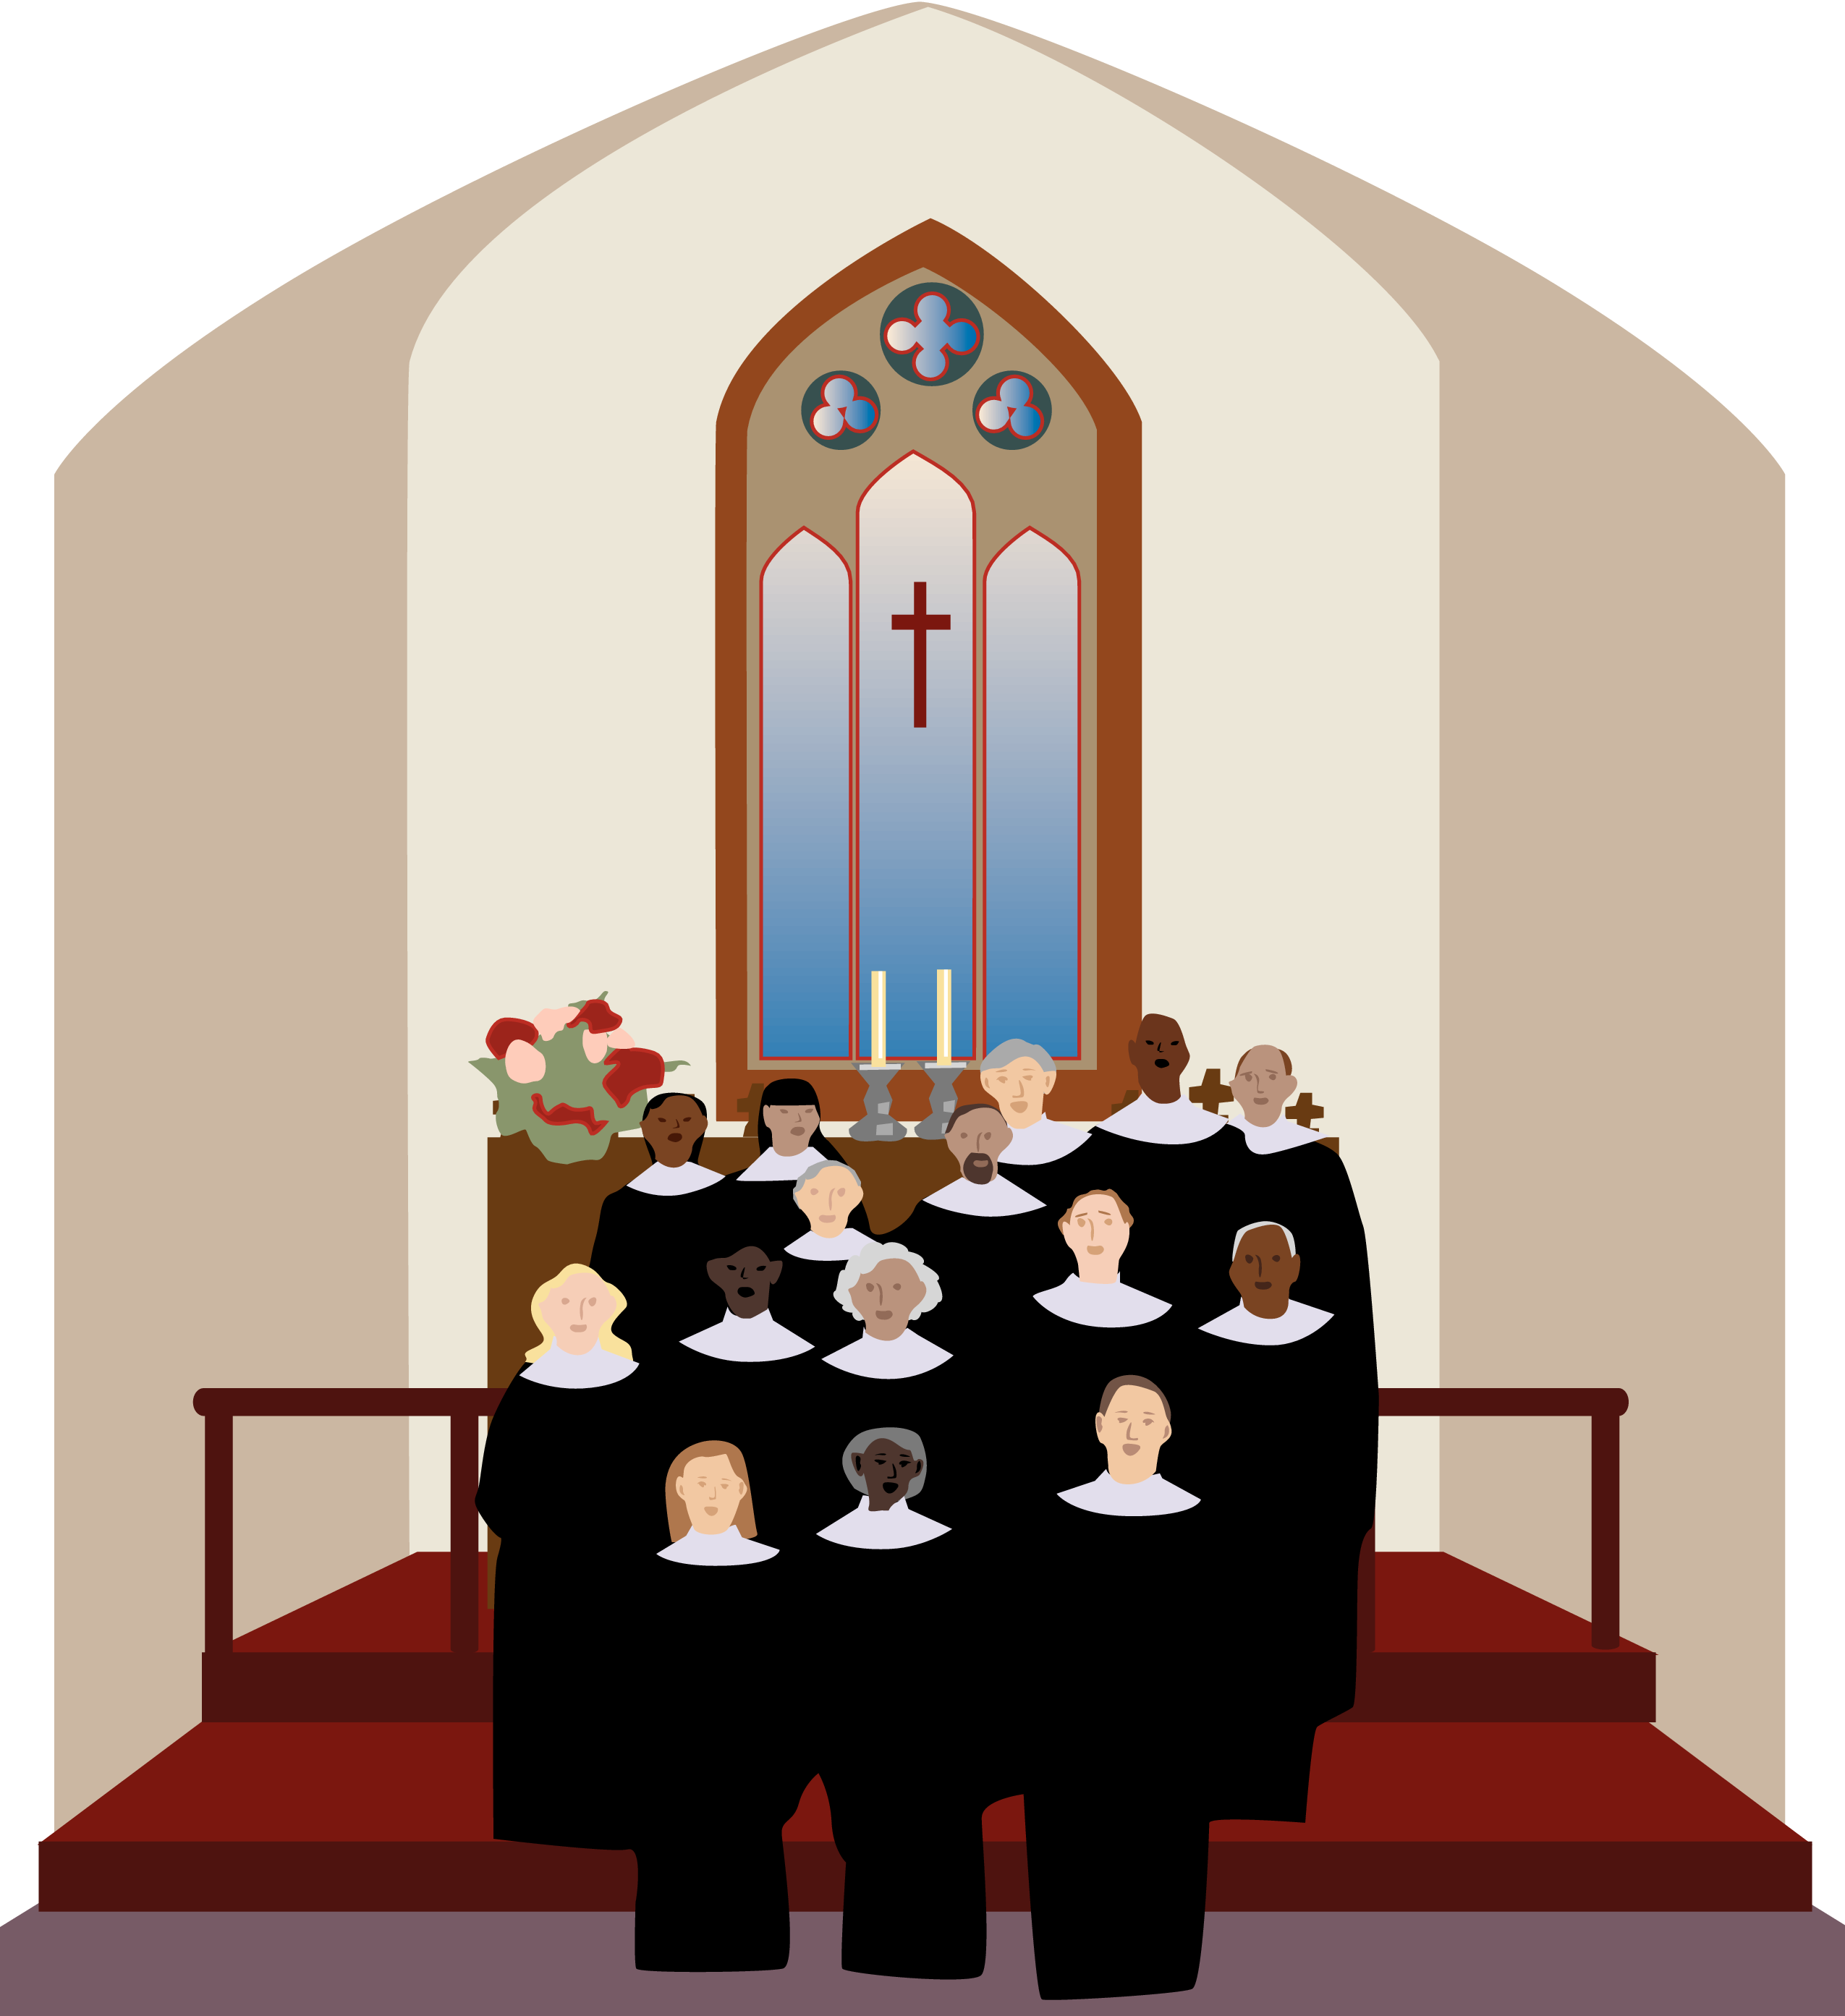 Altar in the catholic. Missions clipart work worship